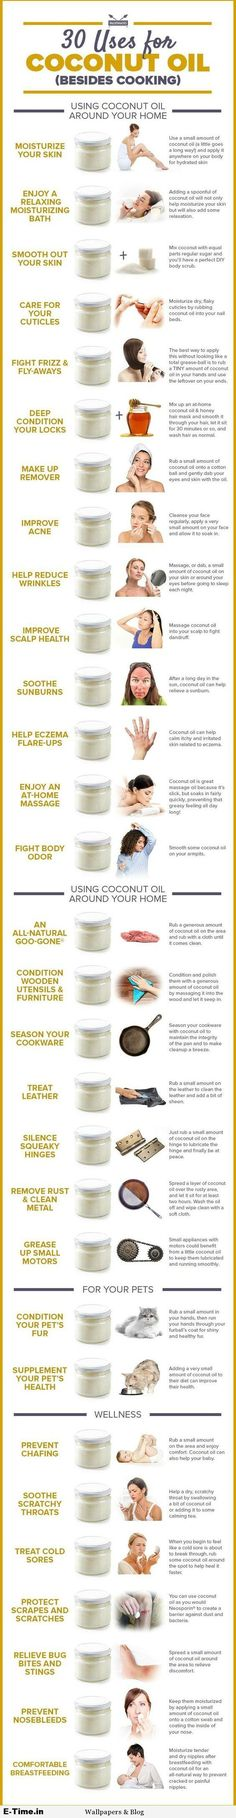 30 Uses For Coconut Oil Besides Cooking